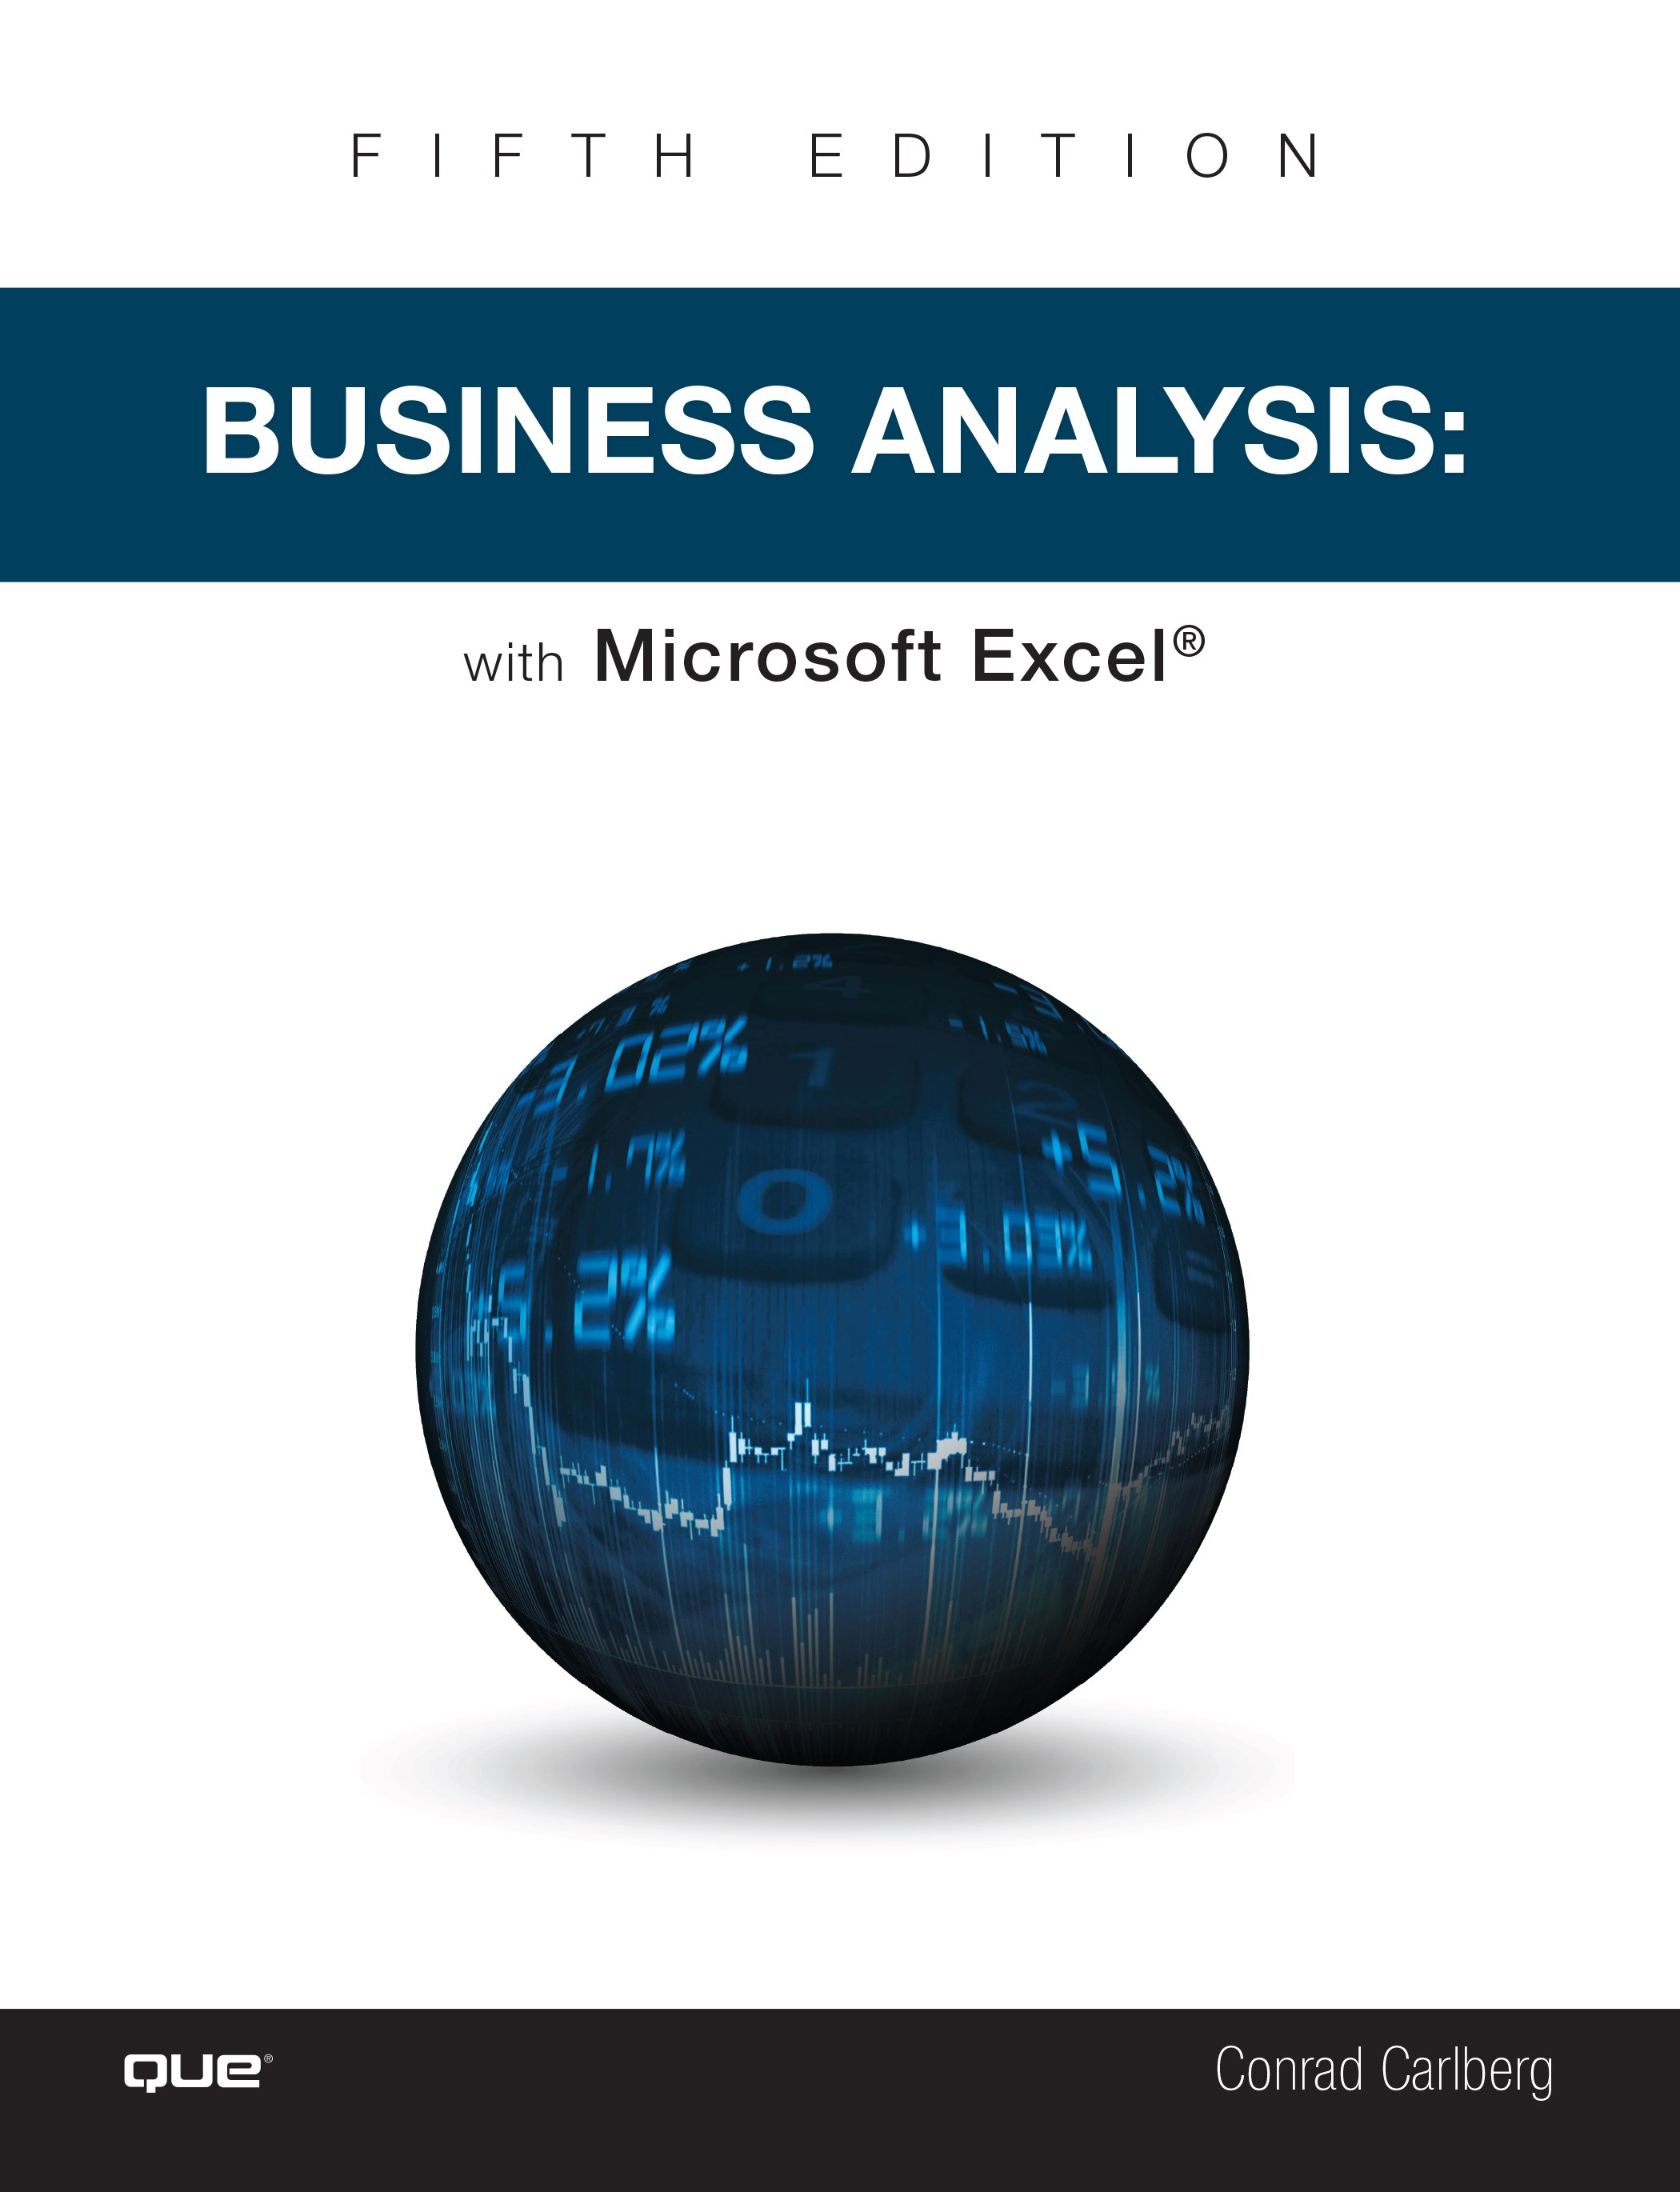 Business Analysis with Microsoft Excel and Power BI, 5th Edition